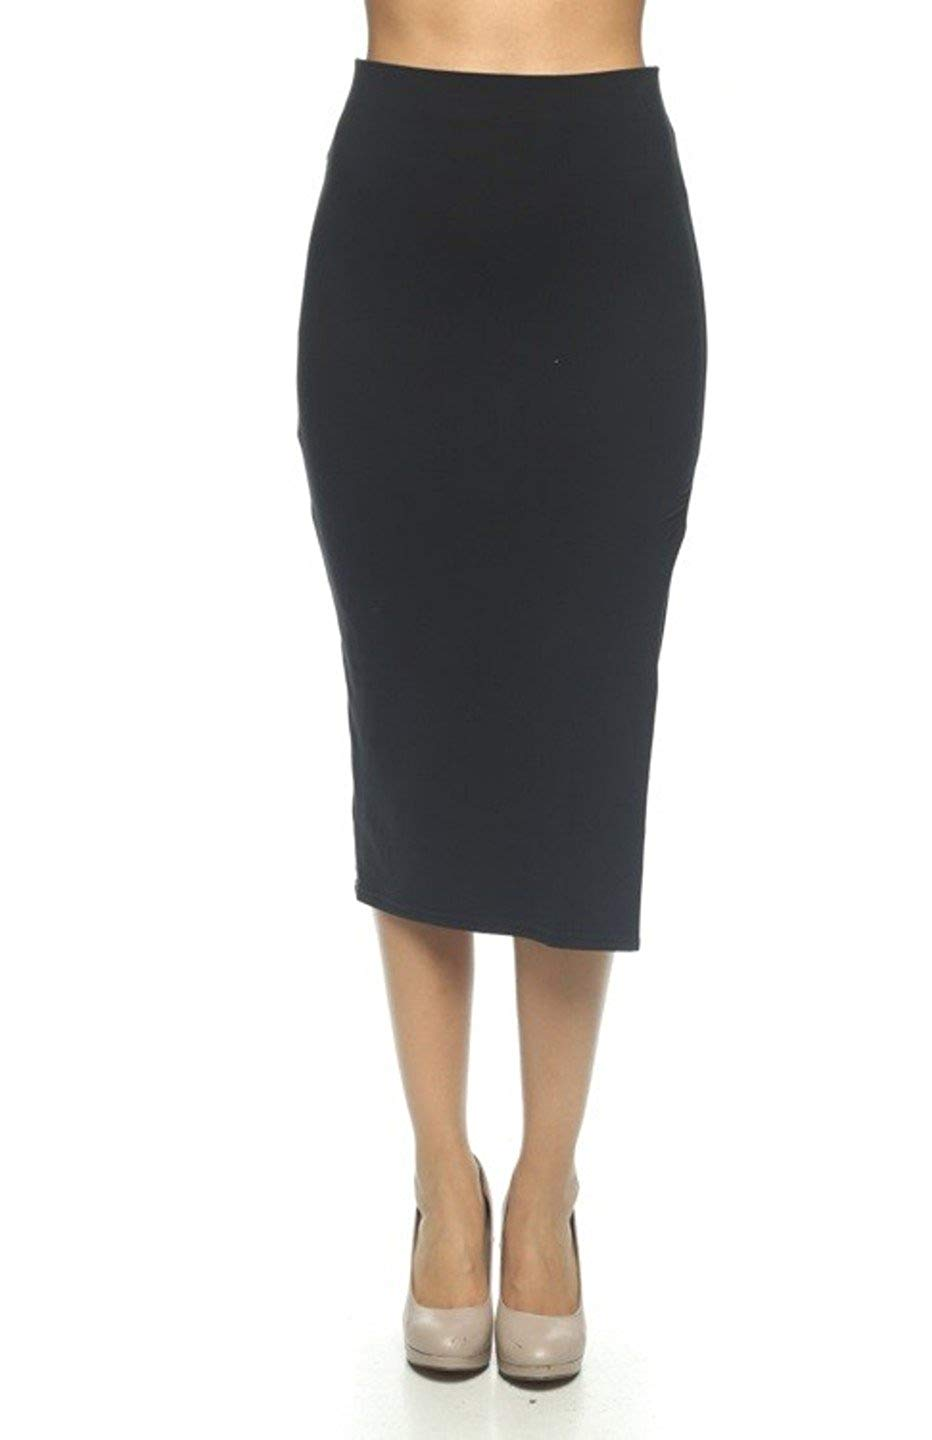 5f43f46a4ec Get Quotations · 2LUV Women s Side Slit Pencil Skirt Black M (BS1884)